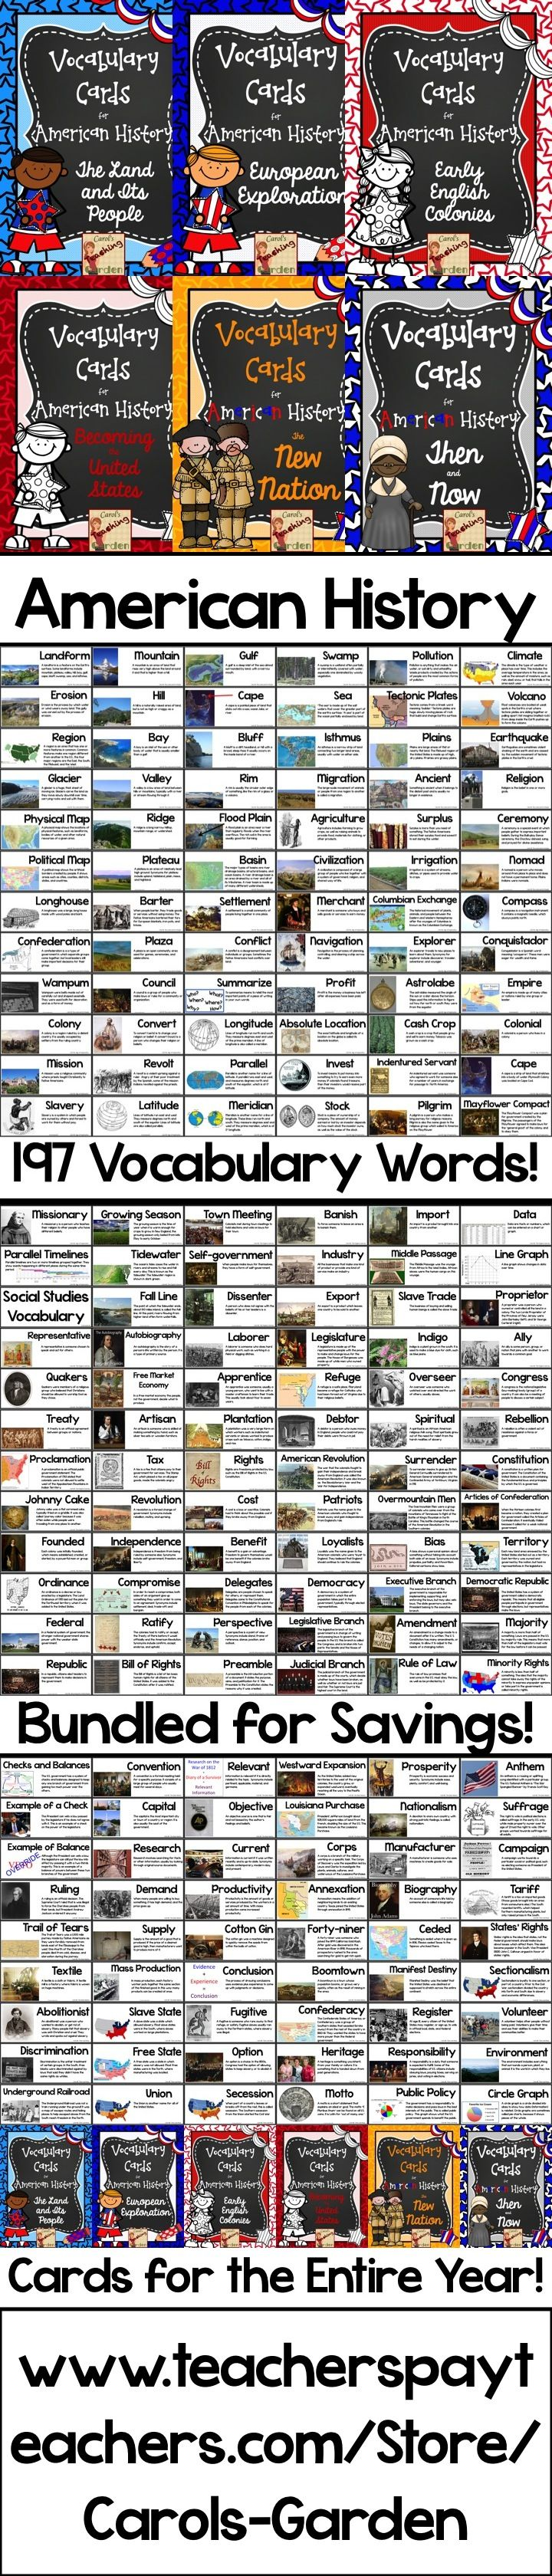 197 American History Vocabulary Cards: complete with illustrations and definitions, plus bundled for savings! $